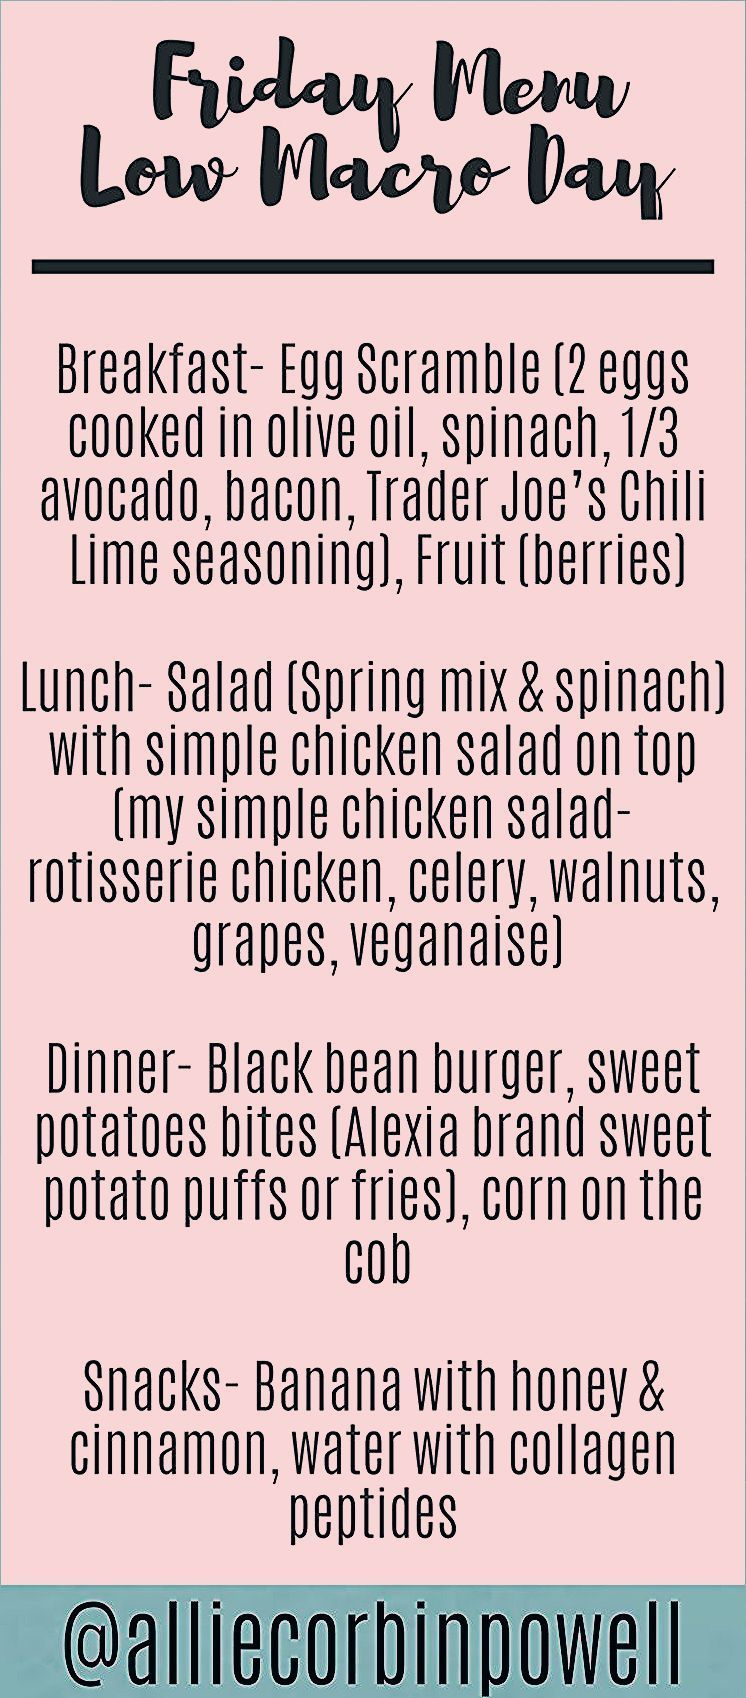 Friday low macro day meal ideas Do you end up picking canned foodstuff or dry food stuff What model There are such a lot of different brands all sizes and shapes of pet f...